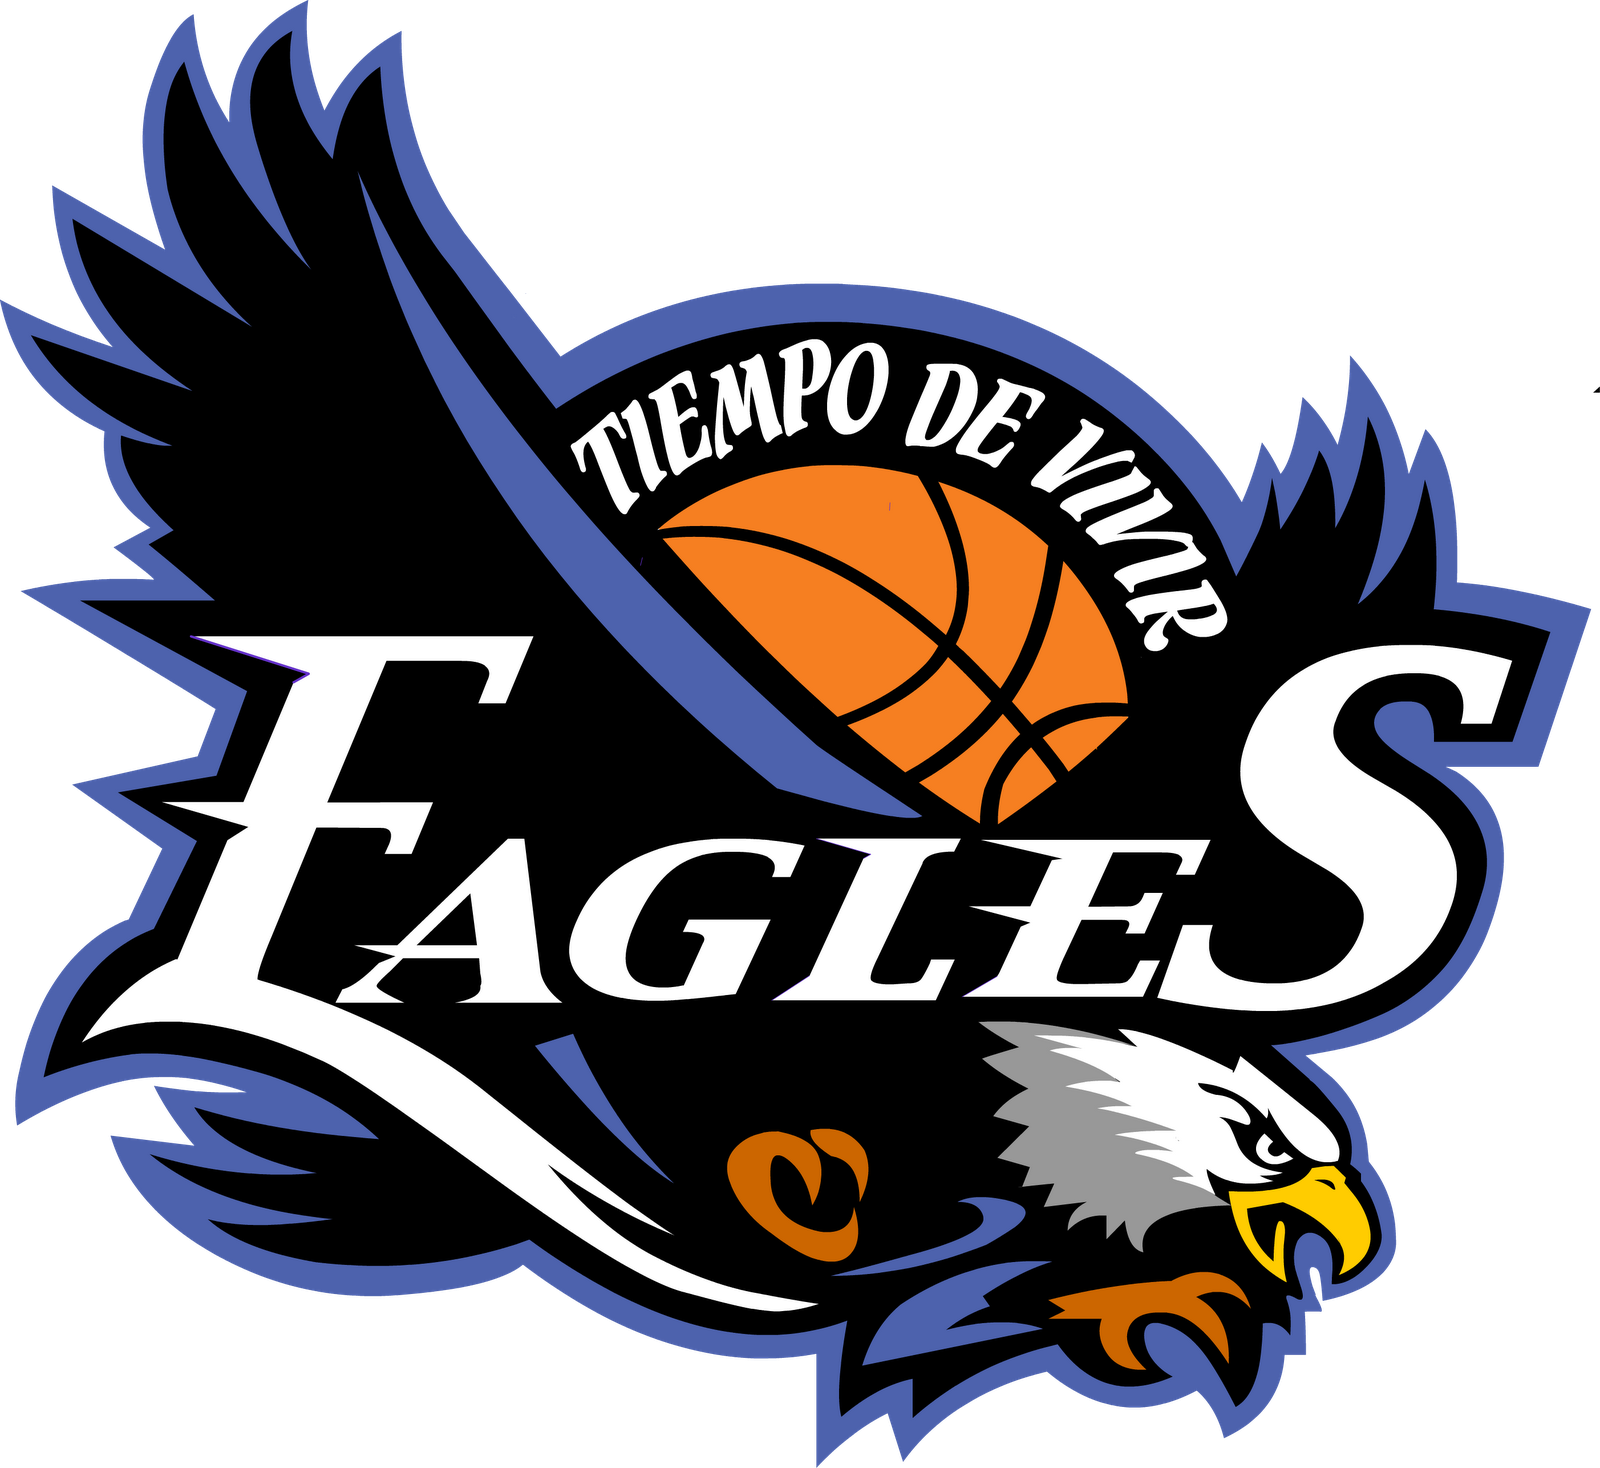 Eagle on basketball clipart transparent 28+ Collection of Eagle Basketball Clipart | High quality, free ... transparent